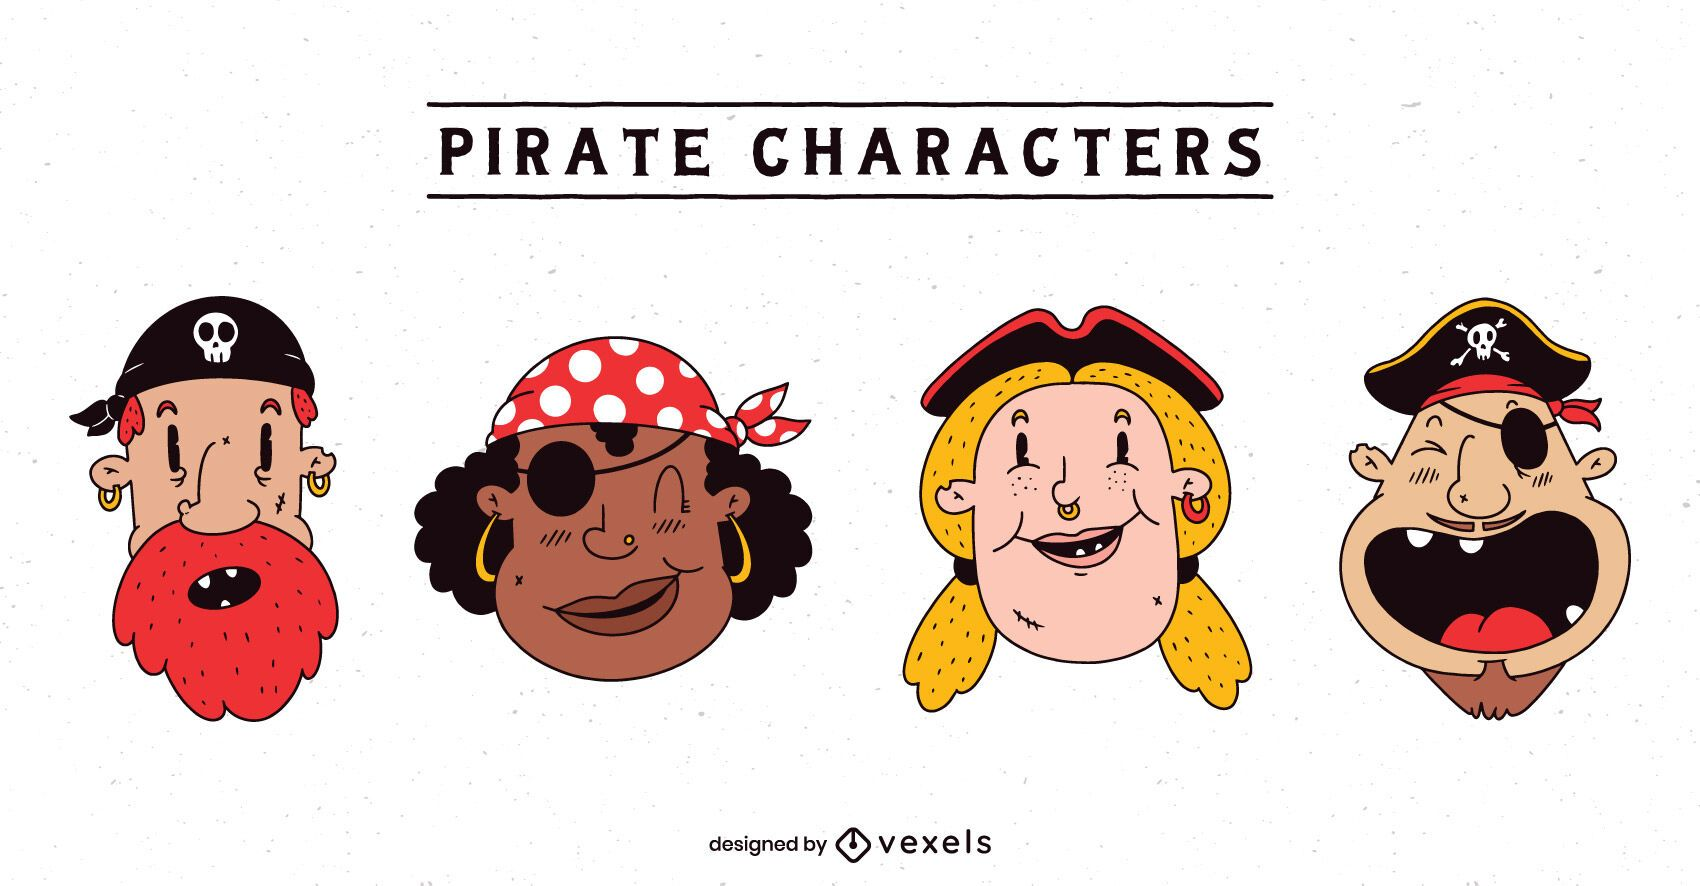 Pirate characters set